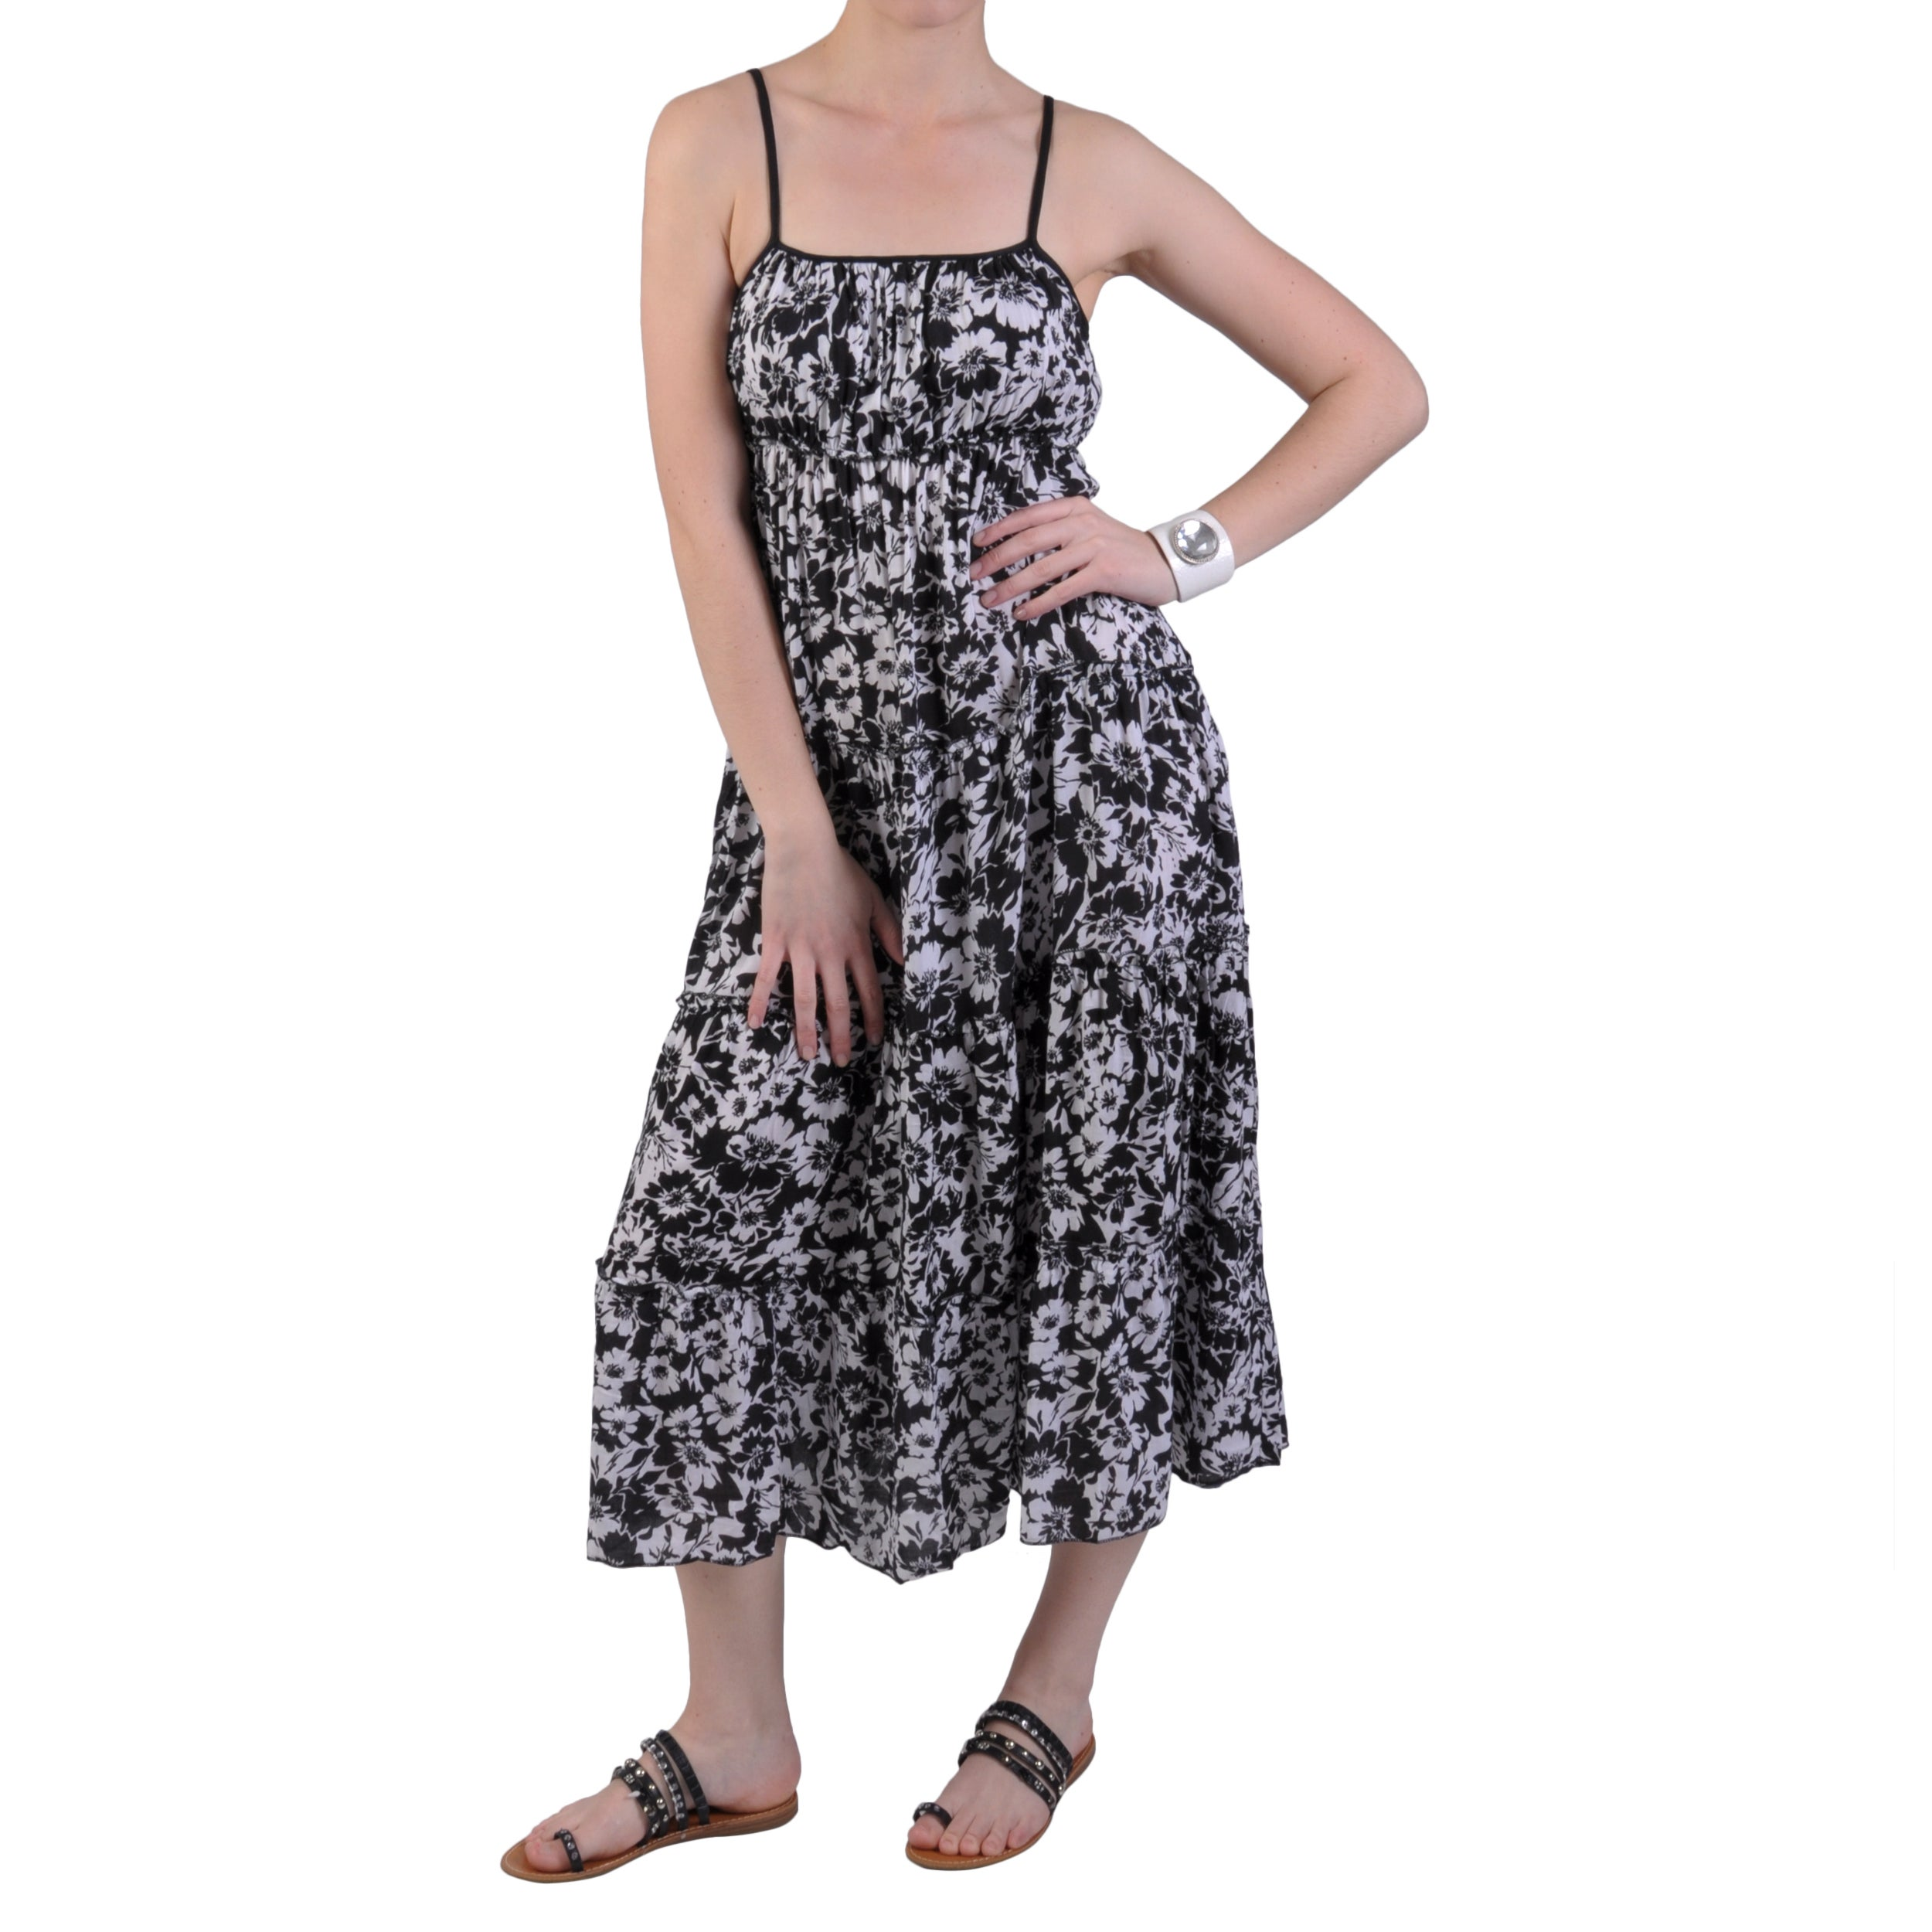 Journee Collection Women's Tiered Ankle Length Spaghetti Strap Dress